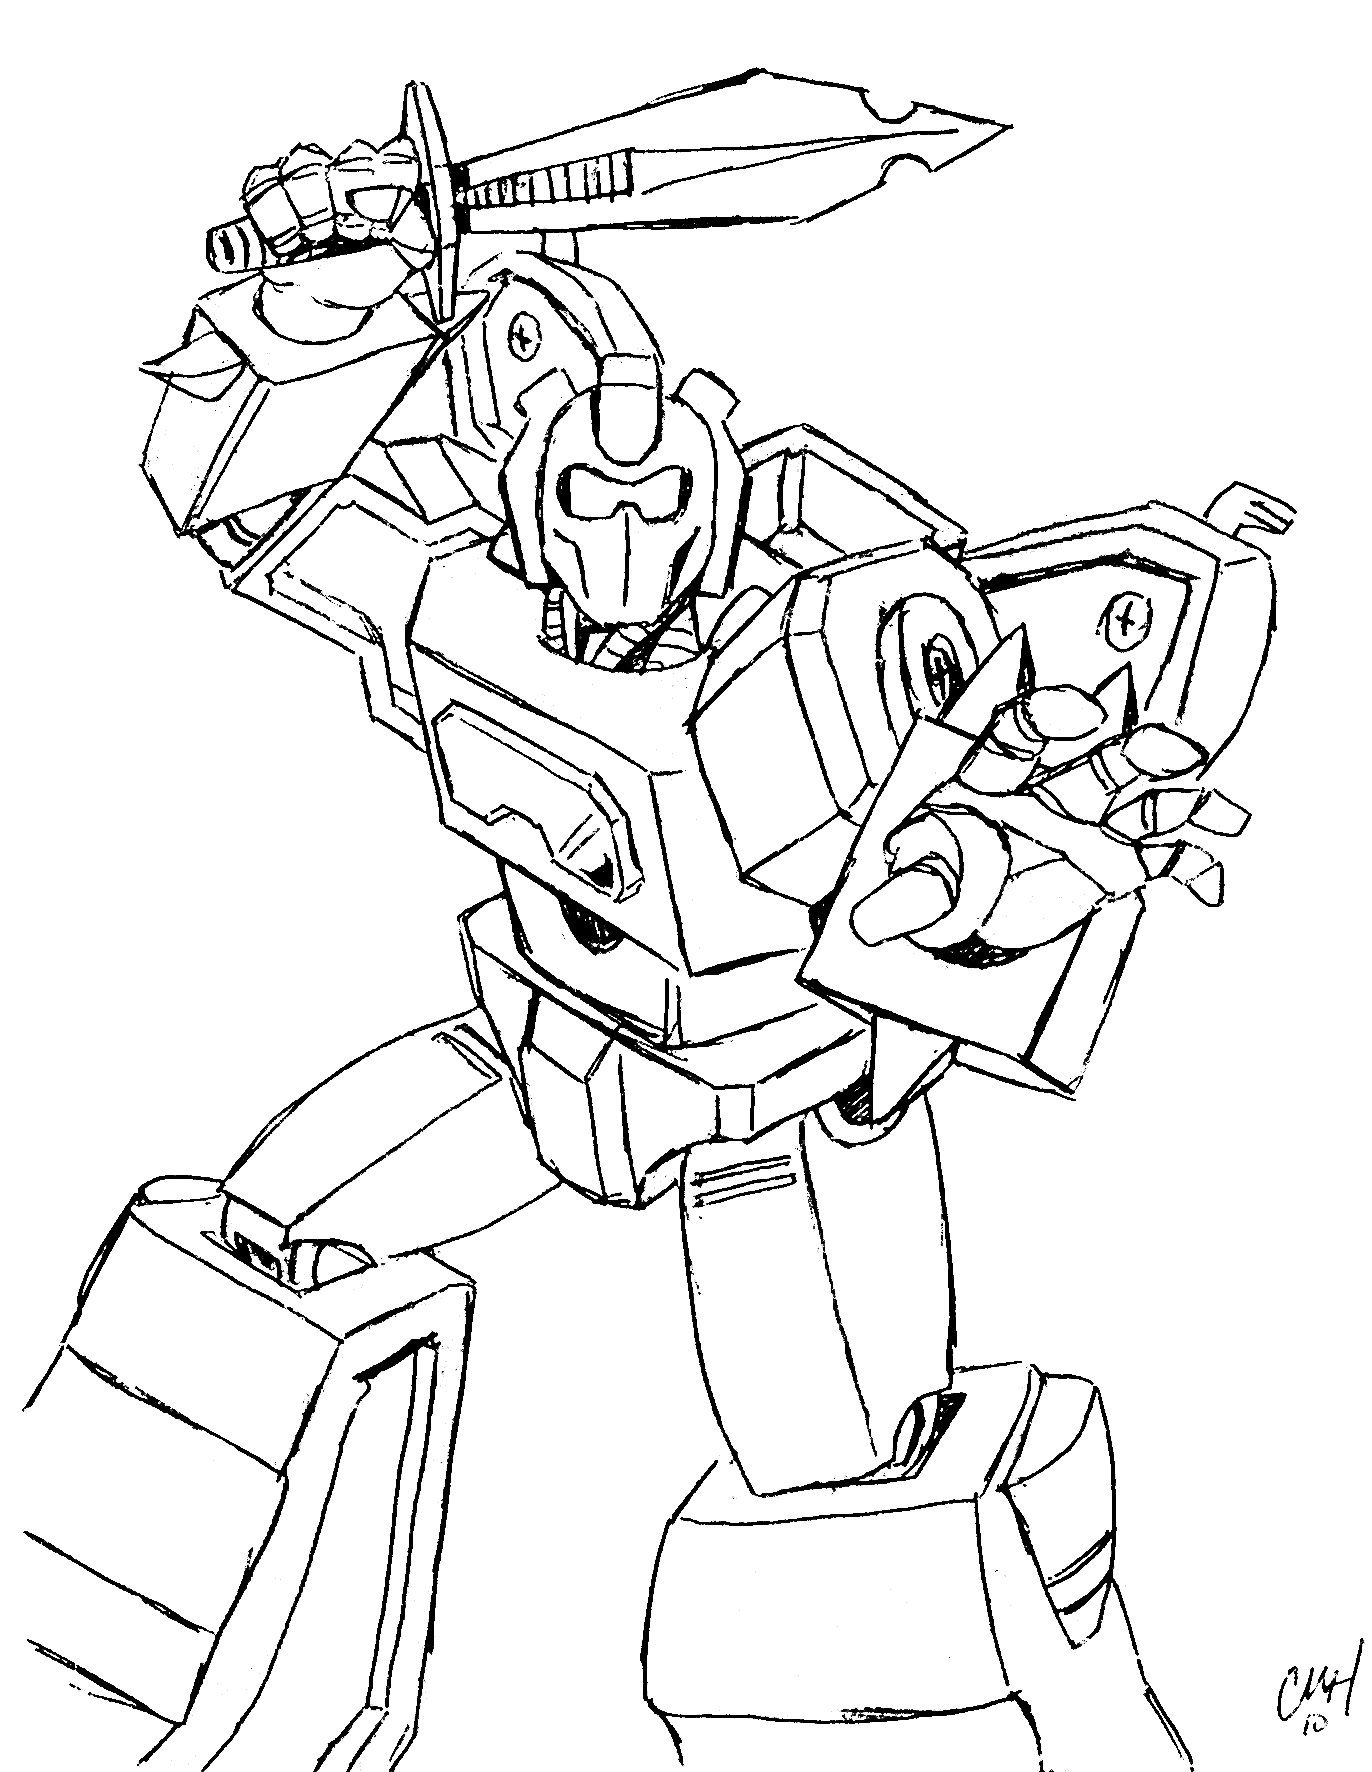 Online childrens coloring pages - Free Printable Transformers Coloring Pages For Kids Nice Transformers Coloring Pages Online